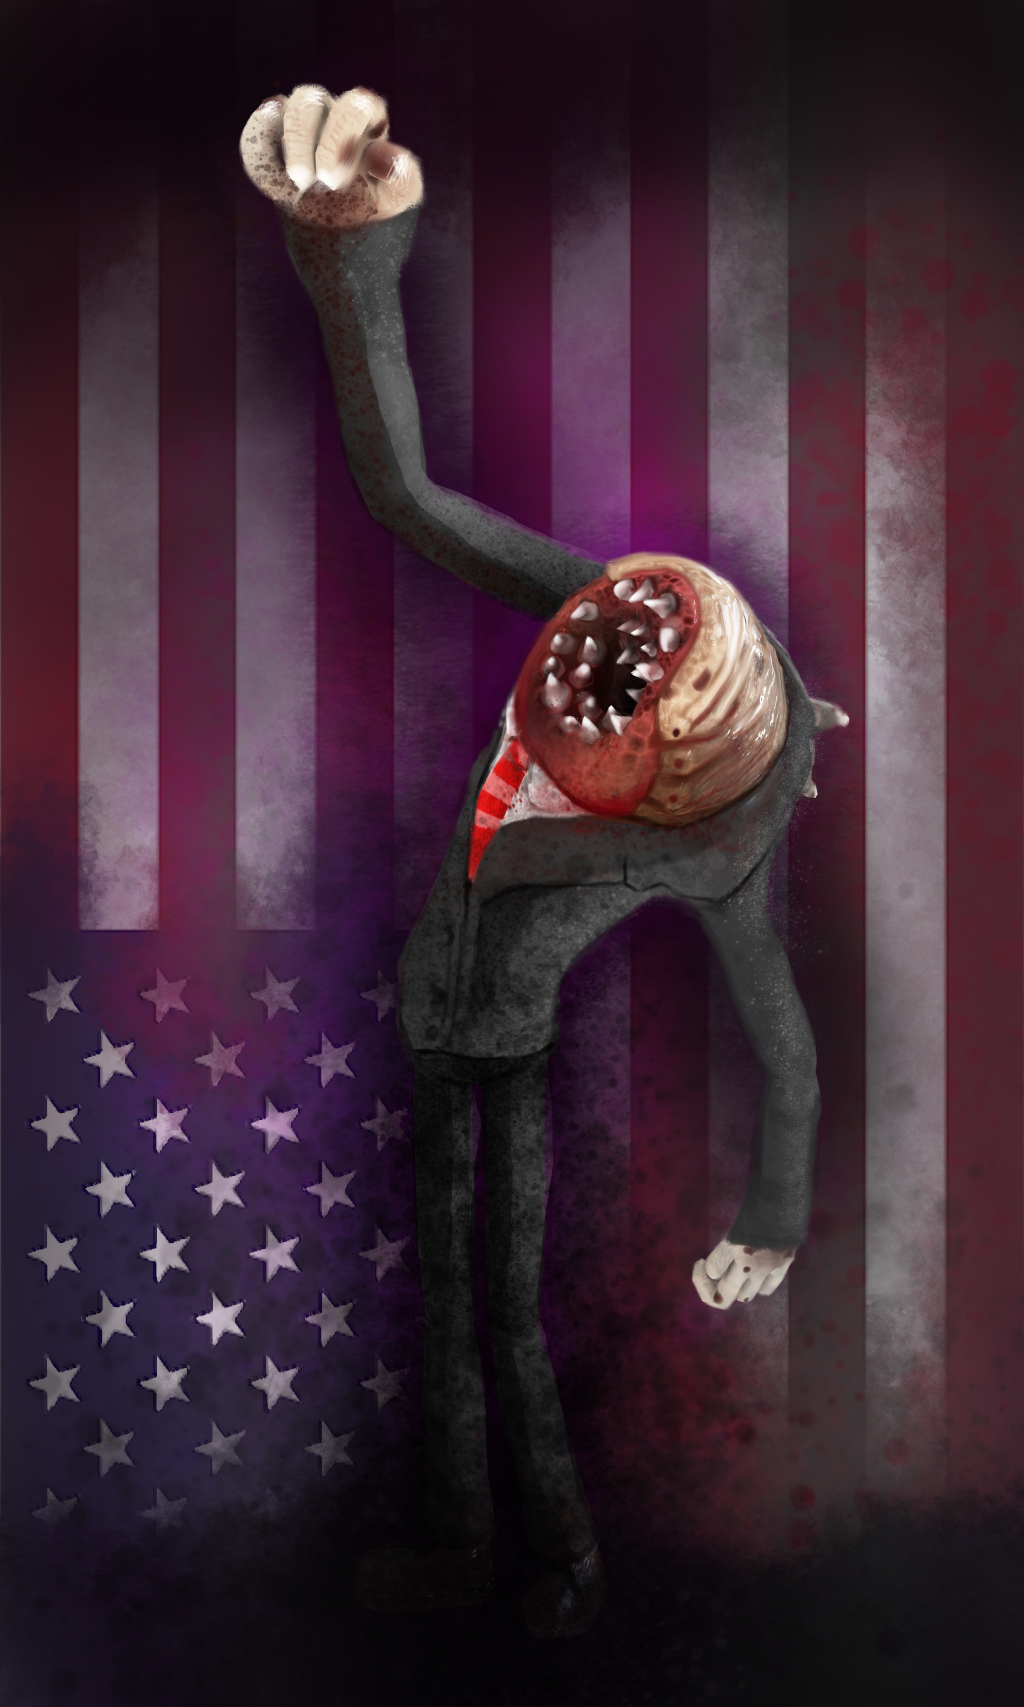 American Leech Shaking a Fist Toward Heaven with American Flag in Background